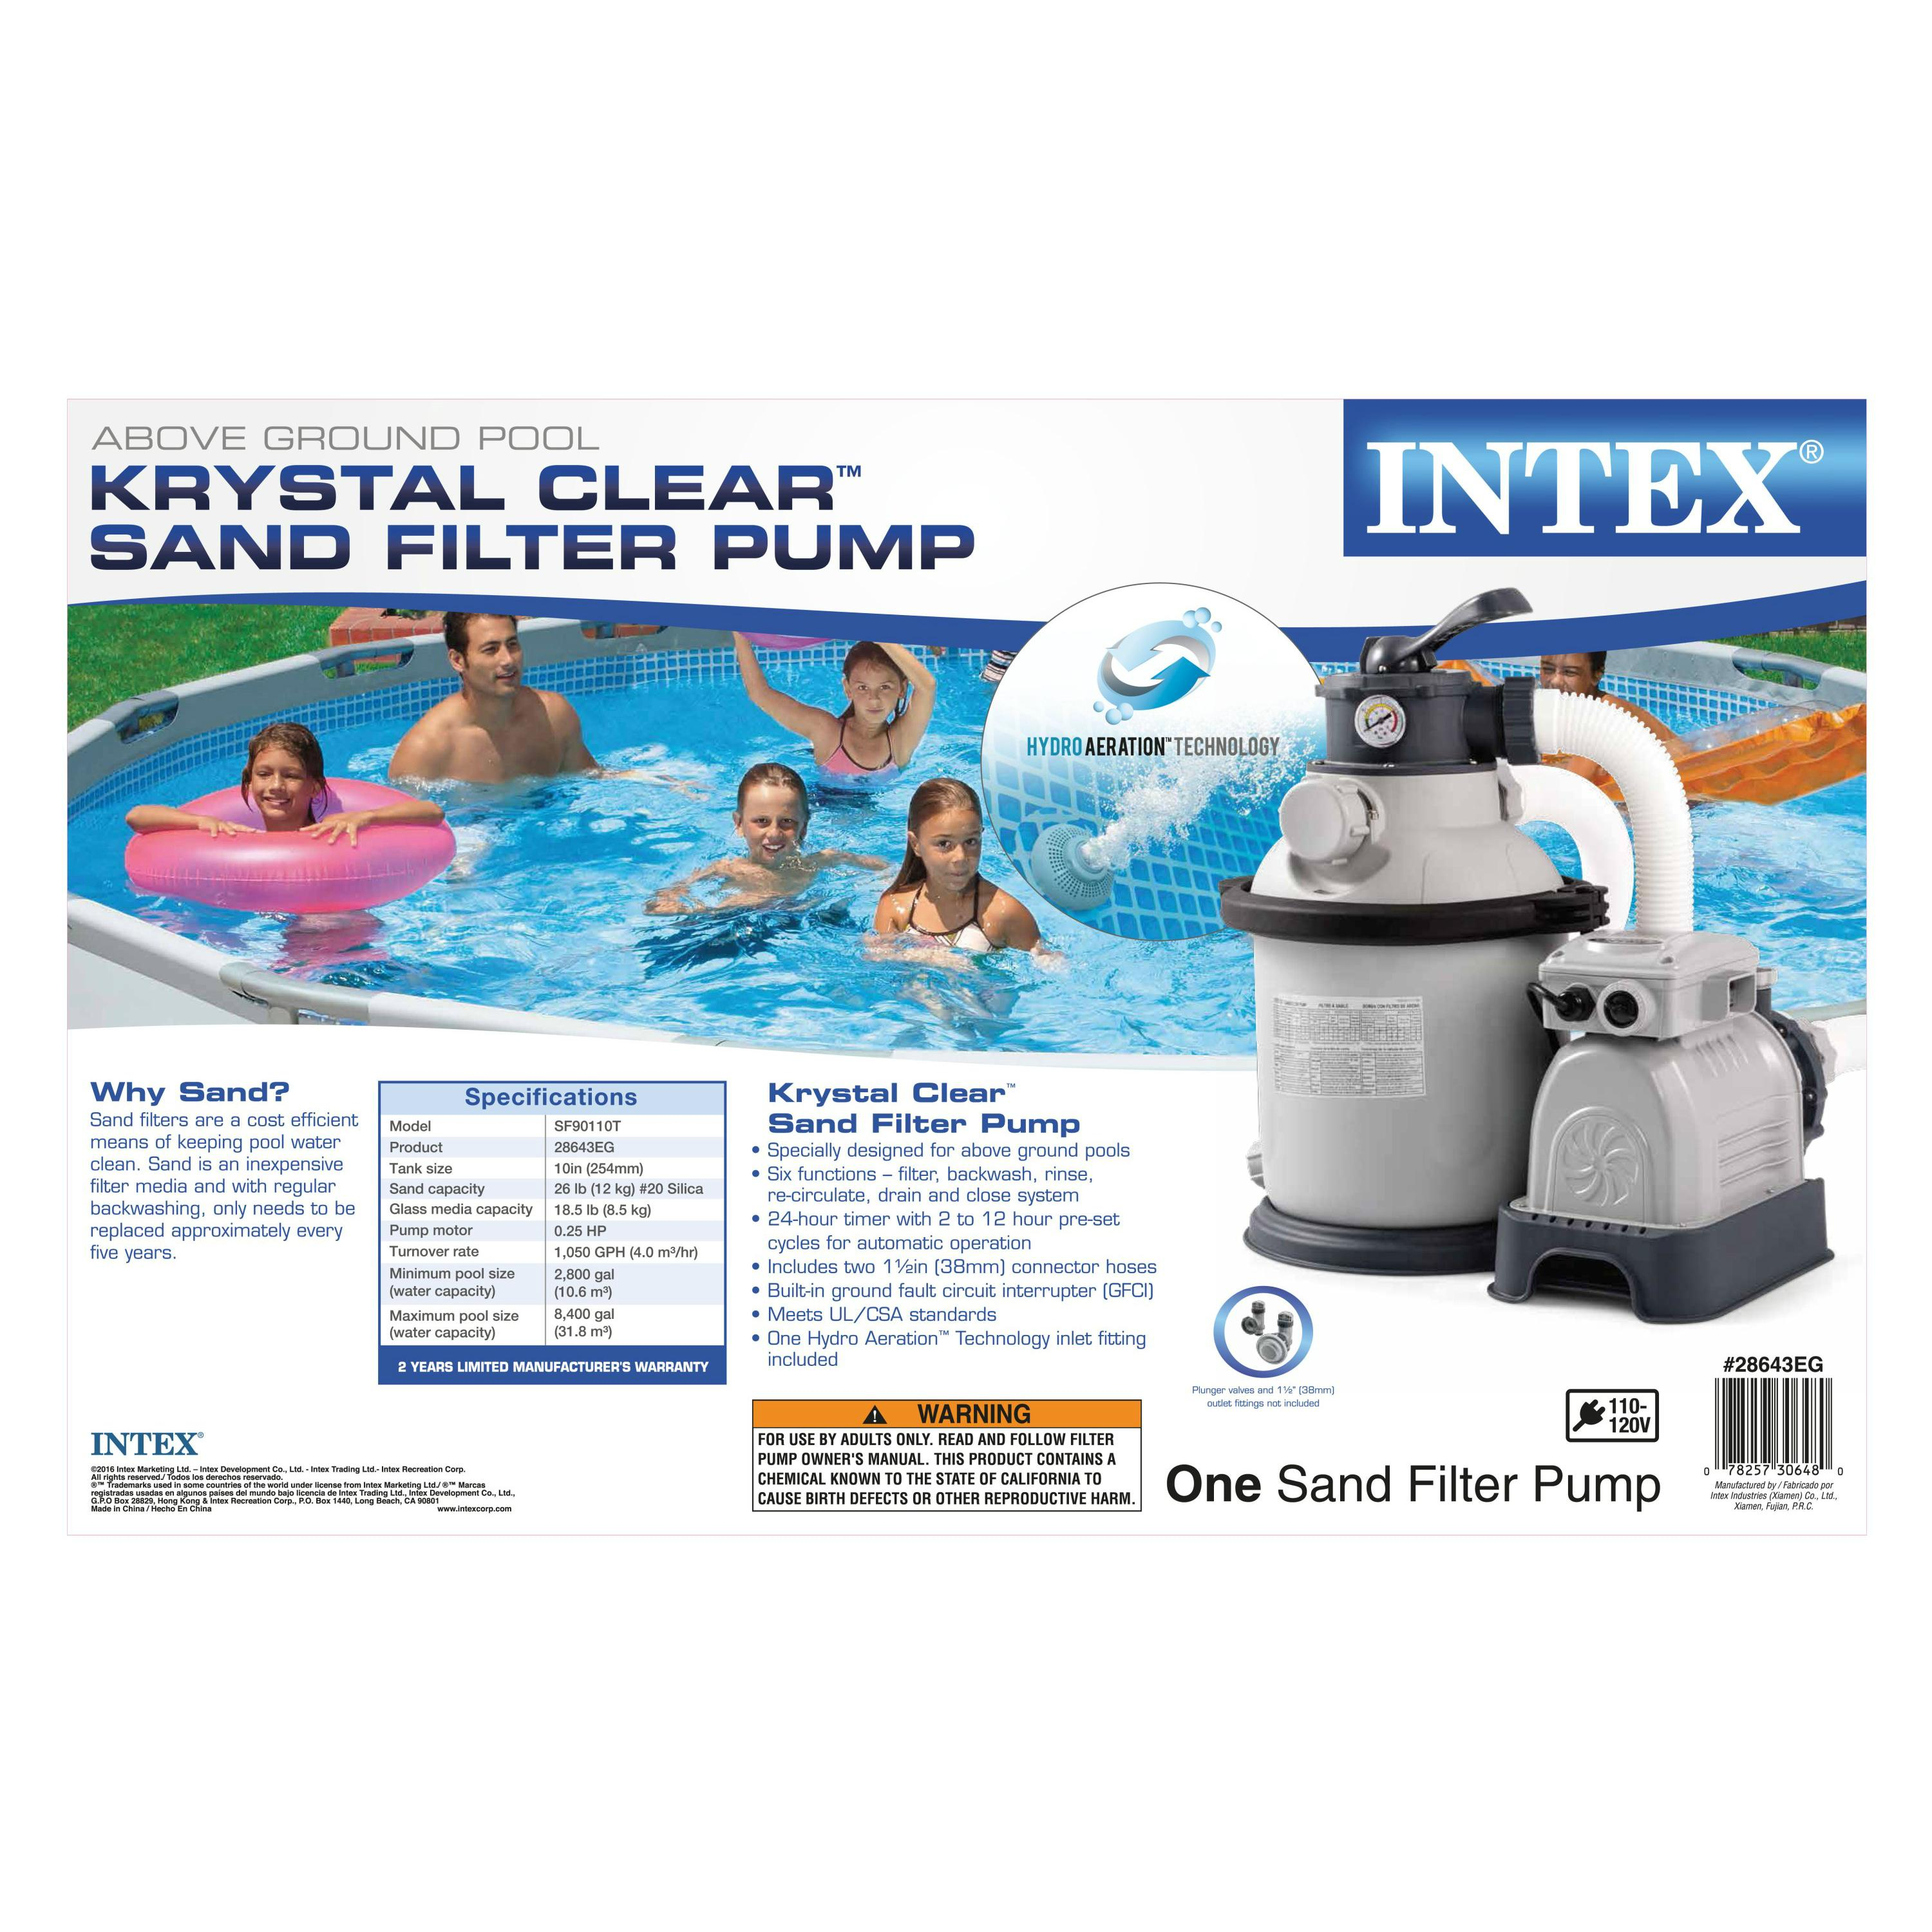 f2b3dc5d 0e92 42f2 b181 cf4e2760315d amazon com intex krystal clear sand filter pump for above ground Basic Electrical Wiring Diagrams at alyssarenee.co